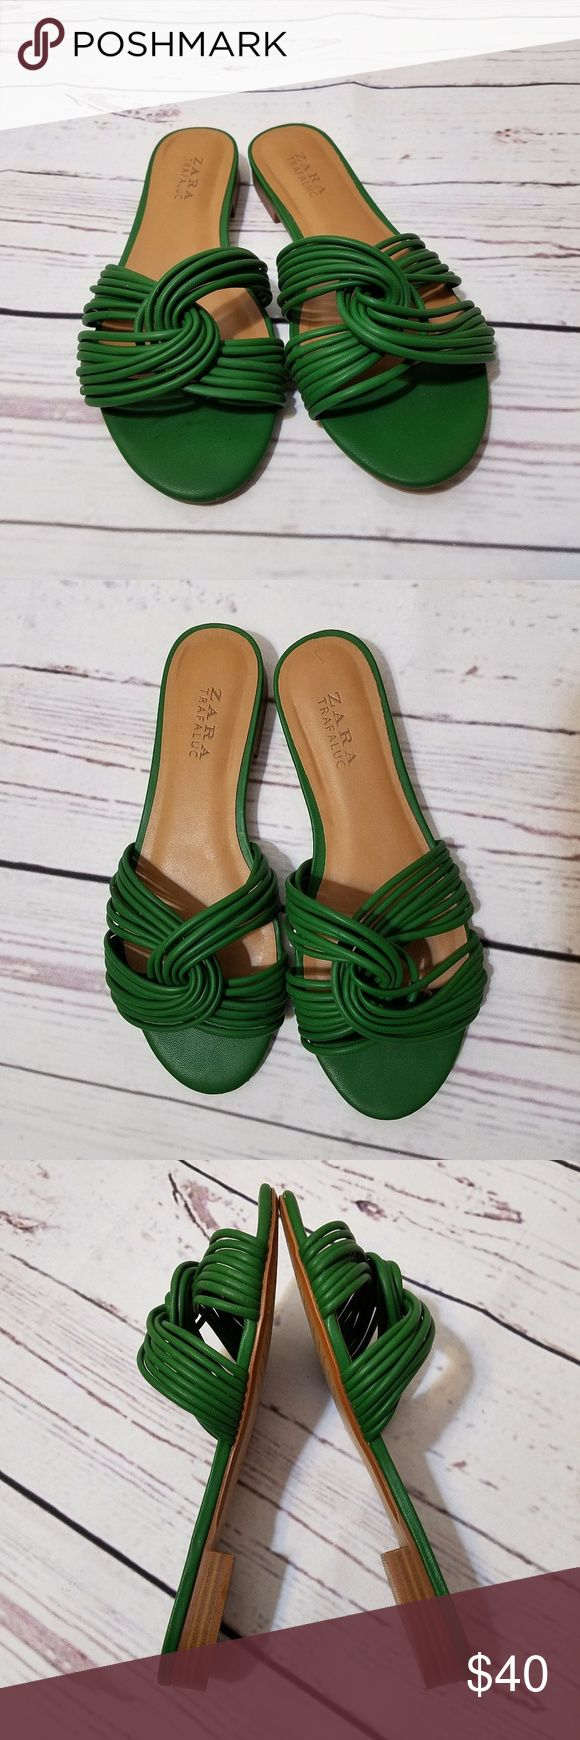 Zara Green Strappy Flat Mules Very good pre-owned condition. The tops of these mules are perfect, the soles have just a little wear as shown in the pictures. The front of the right shoe has a small nick, but no other damages. Size 38 but according to Zara sizing it is a 7.5 rather than an 8. Zara Shoes Mules & Clogs